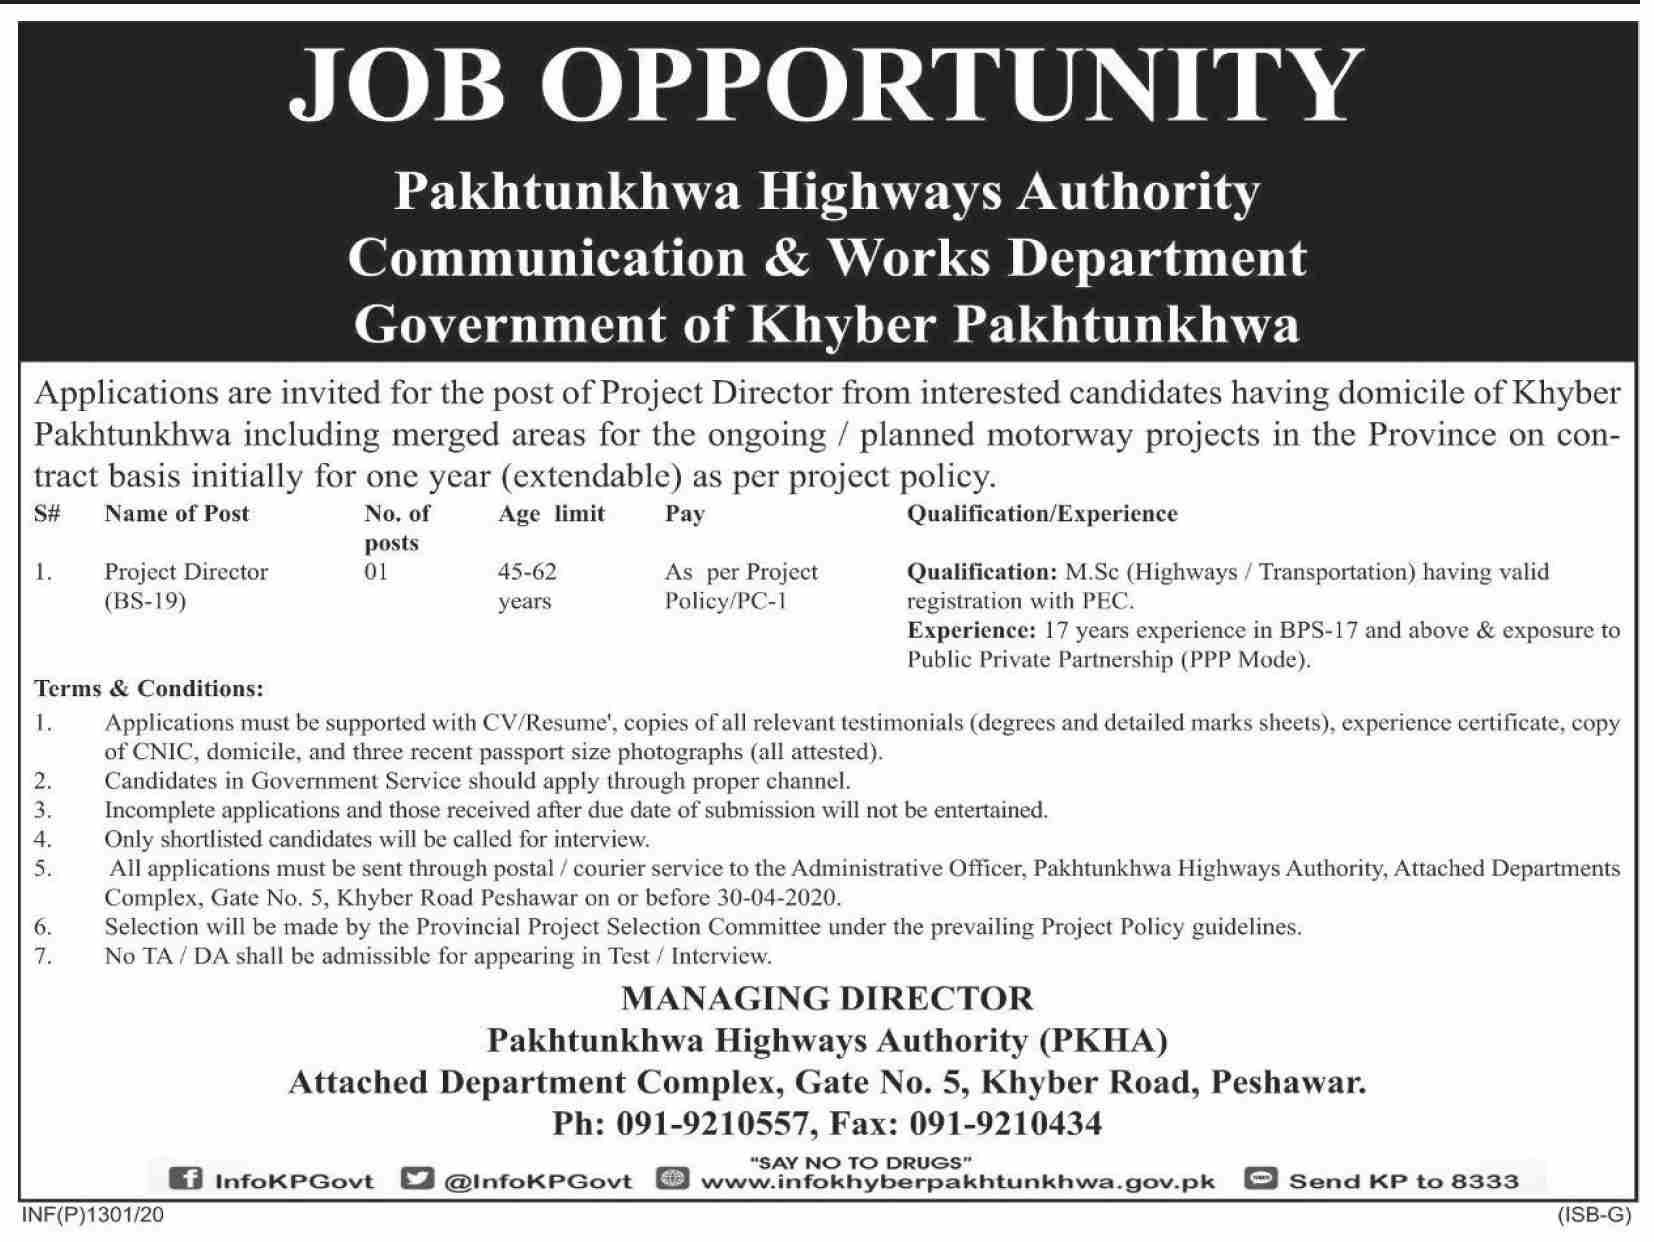 Jobs In Pakhtunkhwa Highway Authority C&W Department Government of KPK 08 April 2020